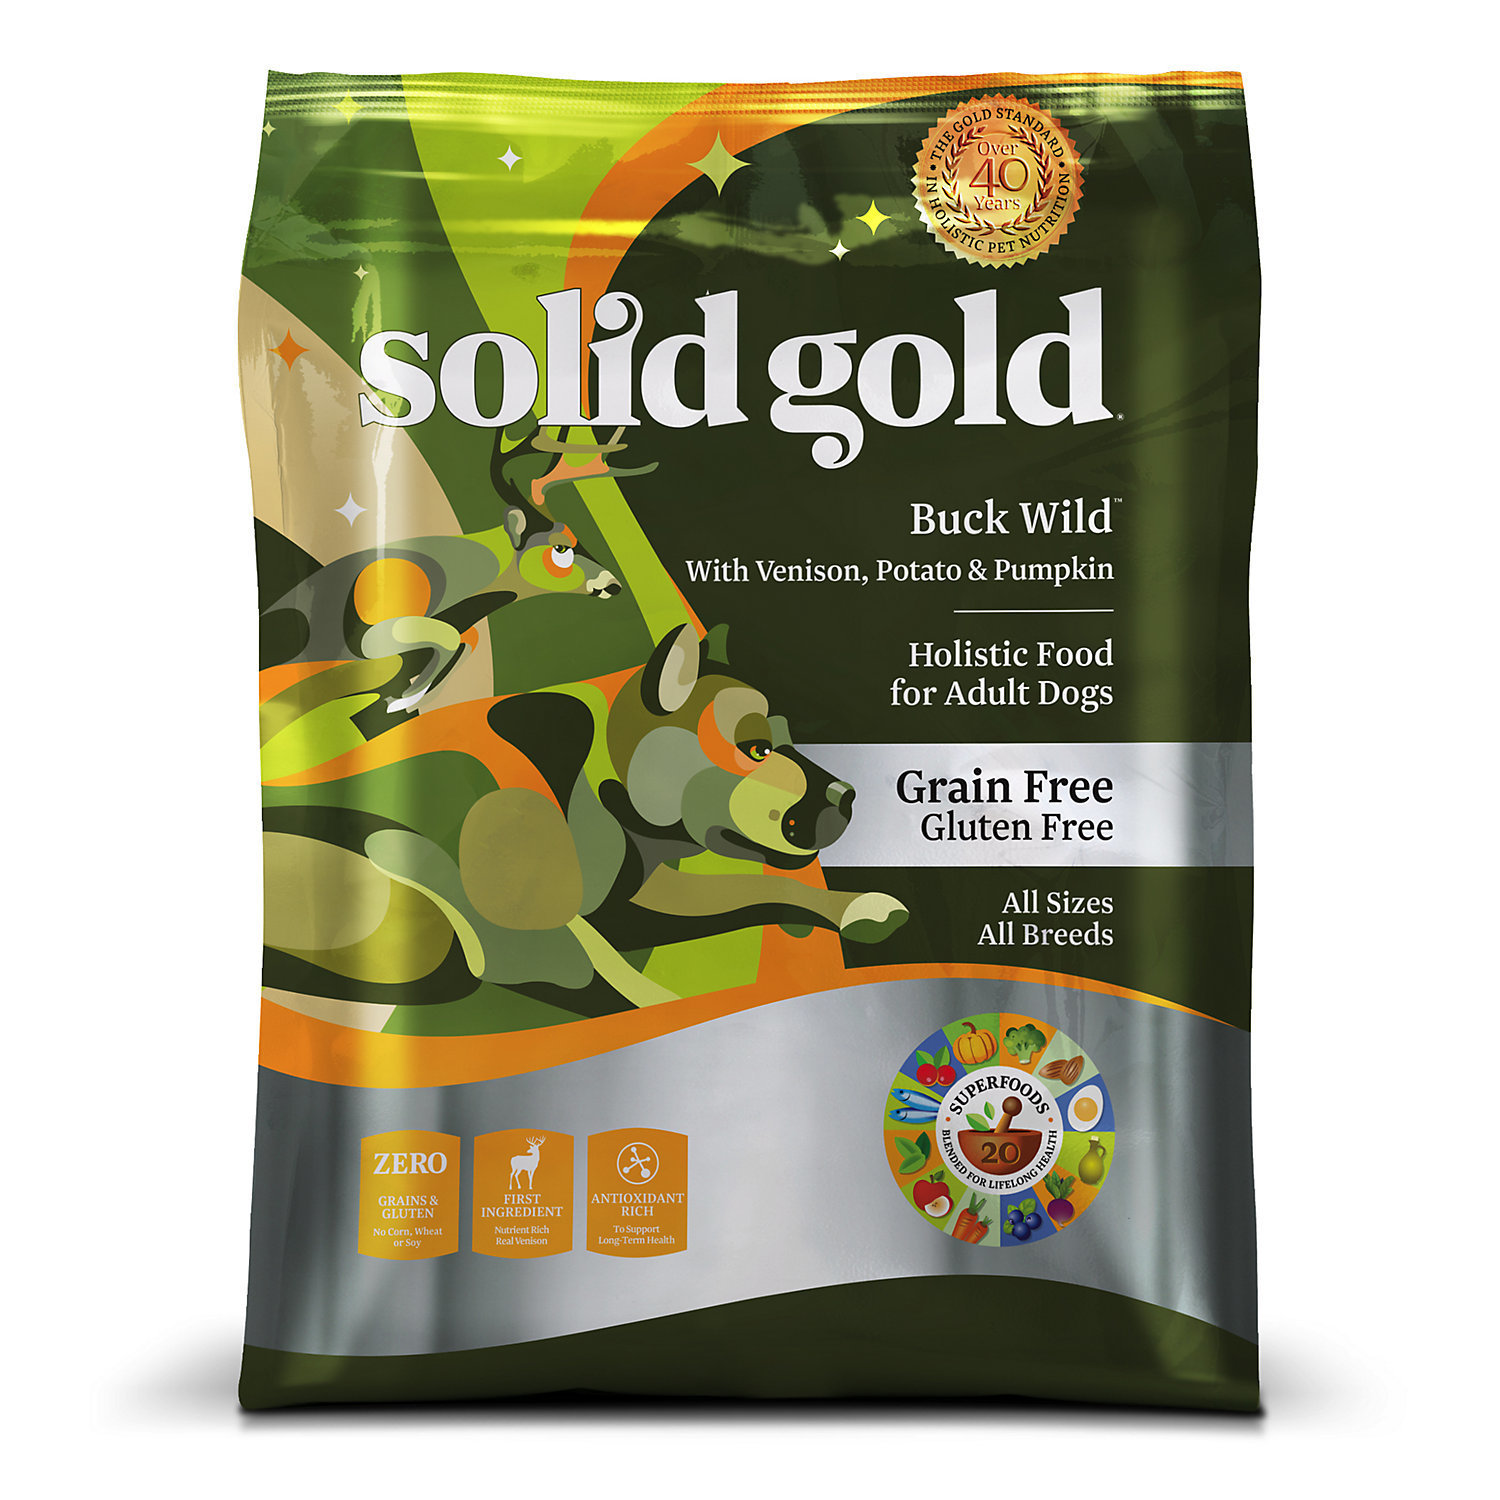 Solid Gold Buck Wild Venison, Potato & Pumpkin Grain Free Adult Dog Food, 4 lbs. (2/19) (A.I1)